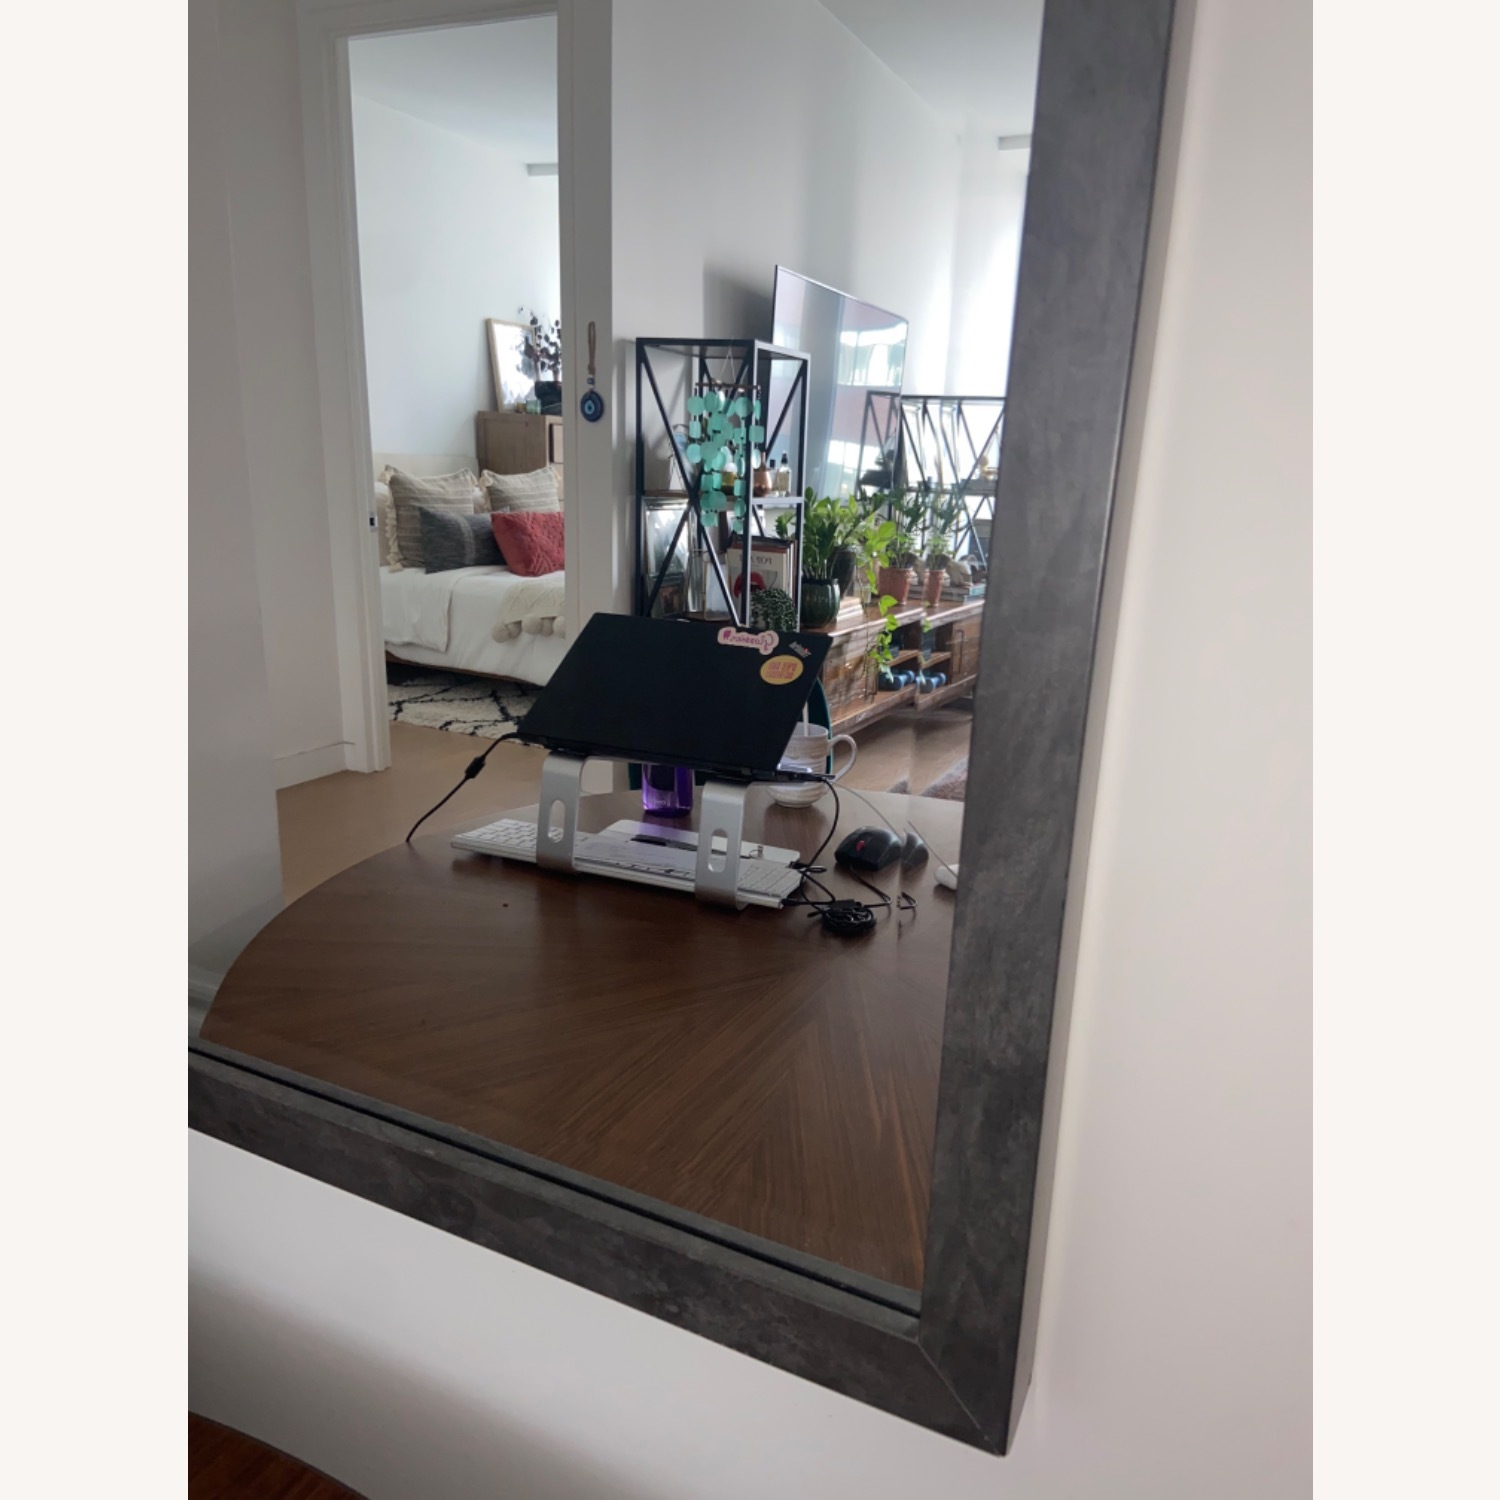 Pottery Barn Mid Century Modern Warehouse Feel Mirror - image-2